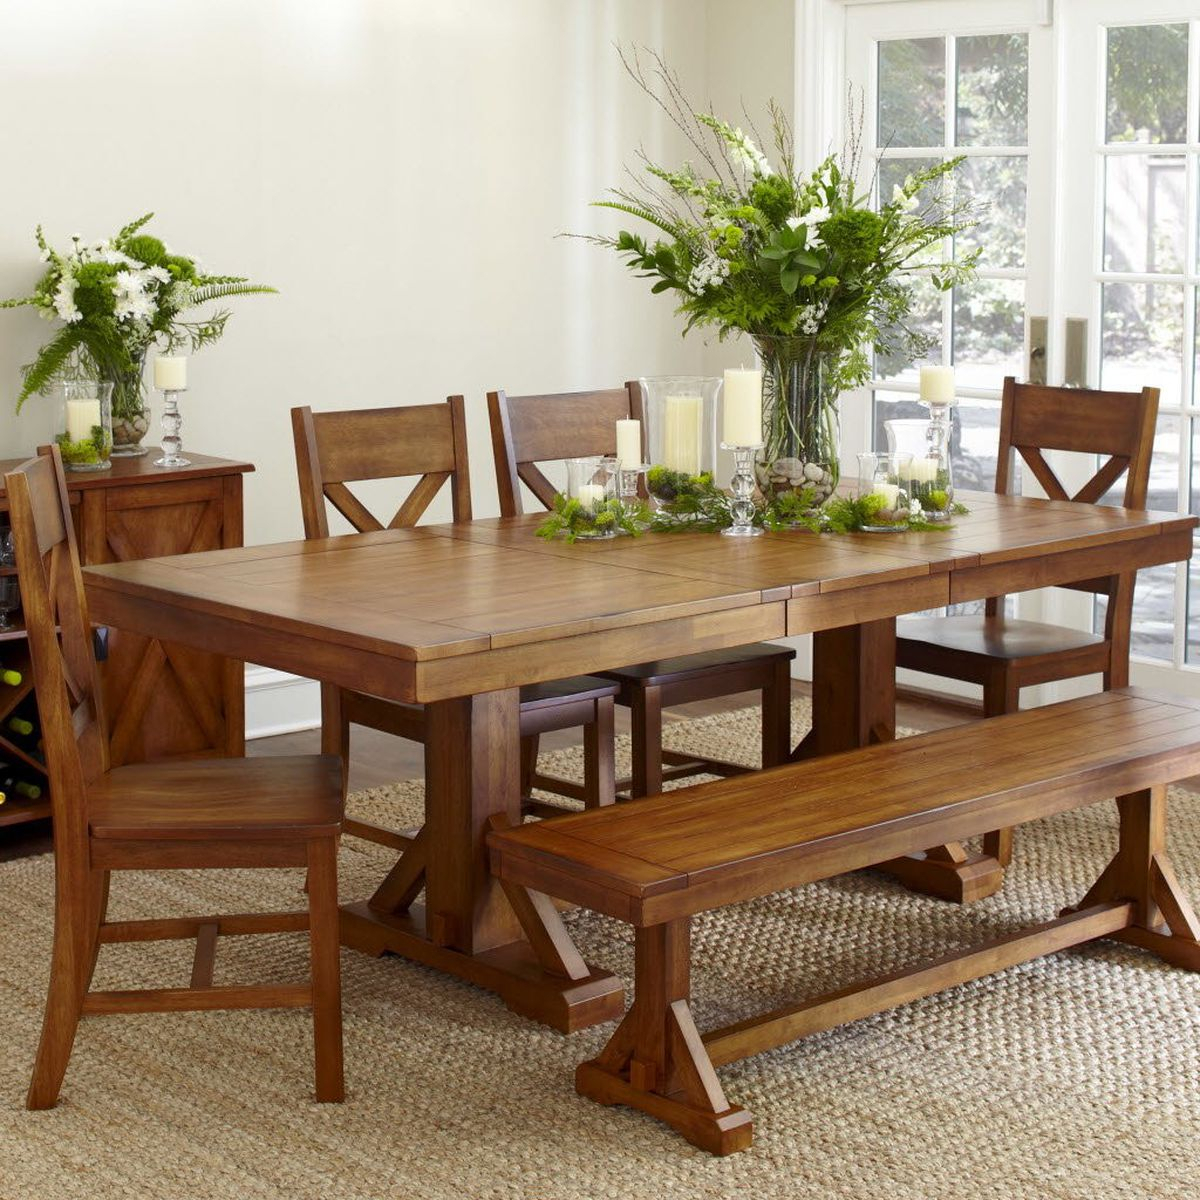 Three Trestle Style Dining Table – Oregonlive With Regard To Best And Newest Nerida Trestle Dining Tables (View 4 of 15)